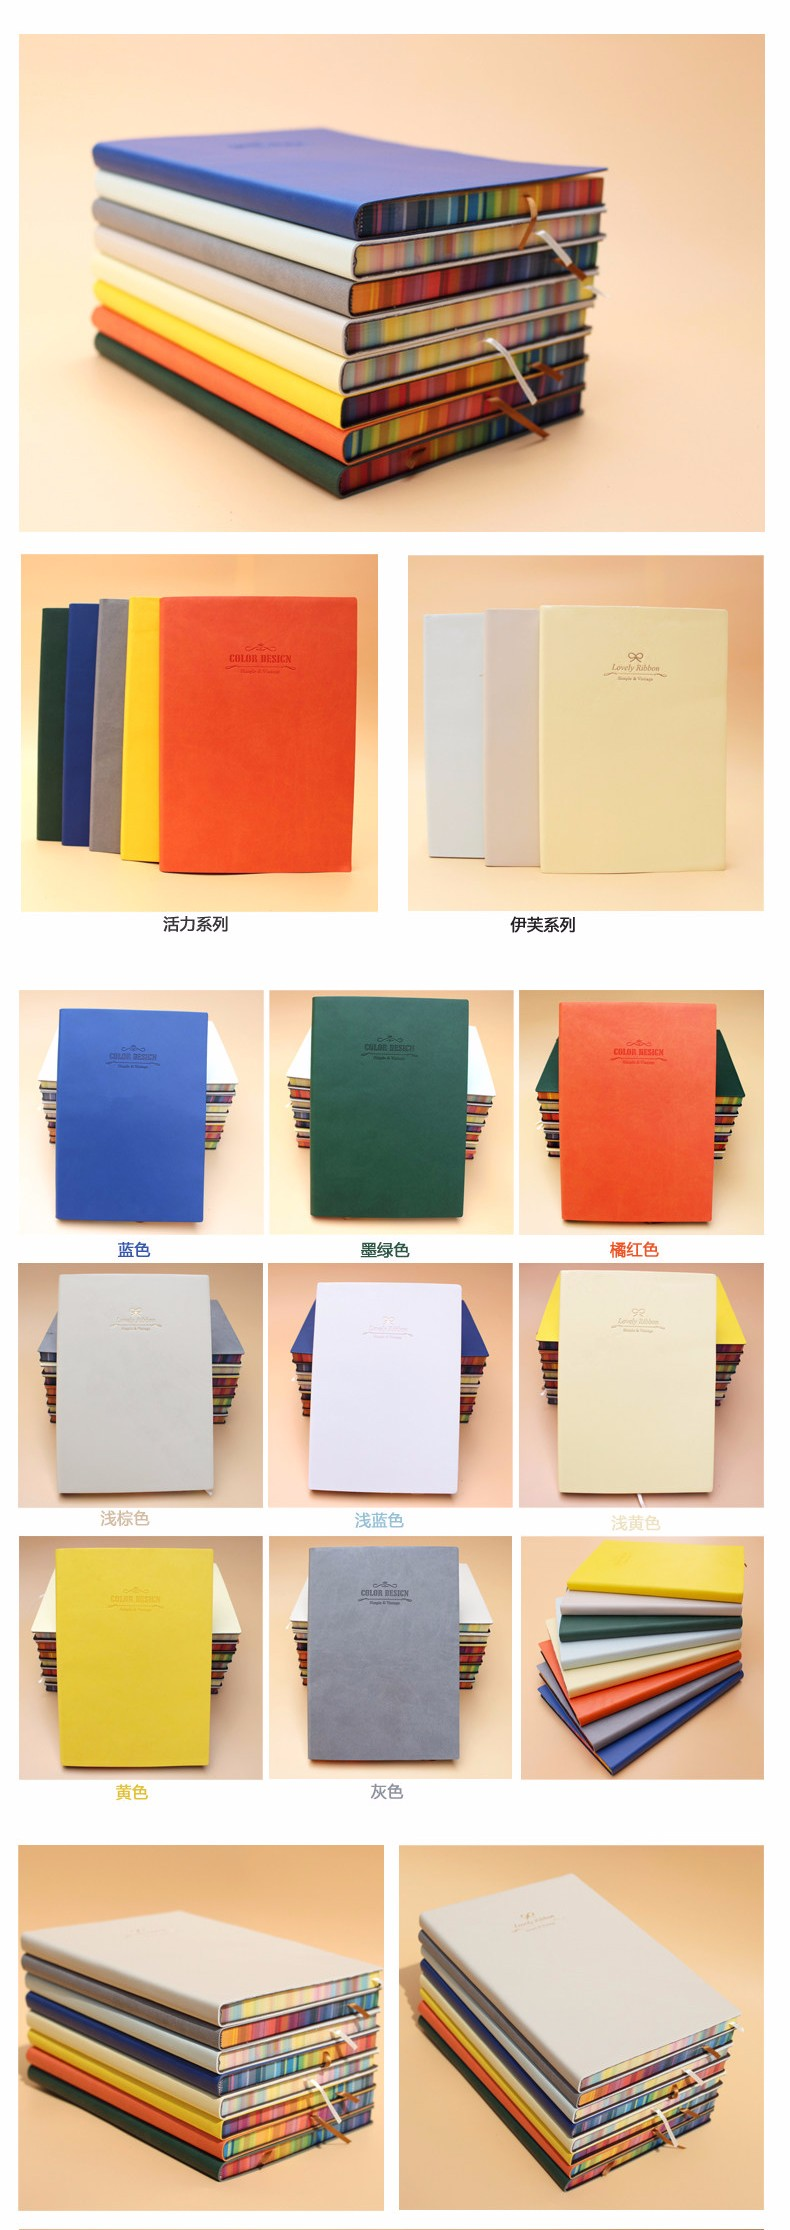 2016 svepa pu leather soft cover notebook with sta a4 stationery wholesaller